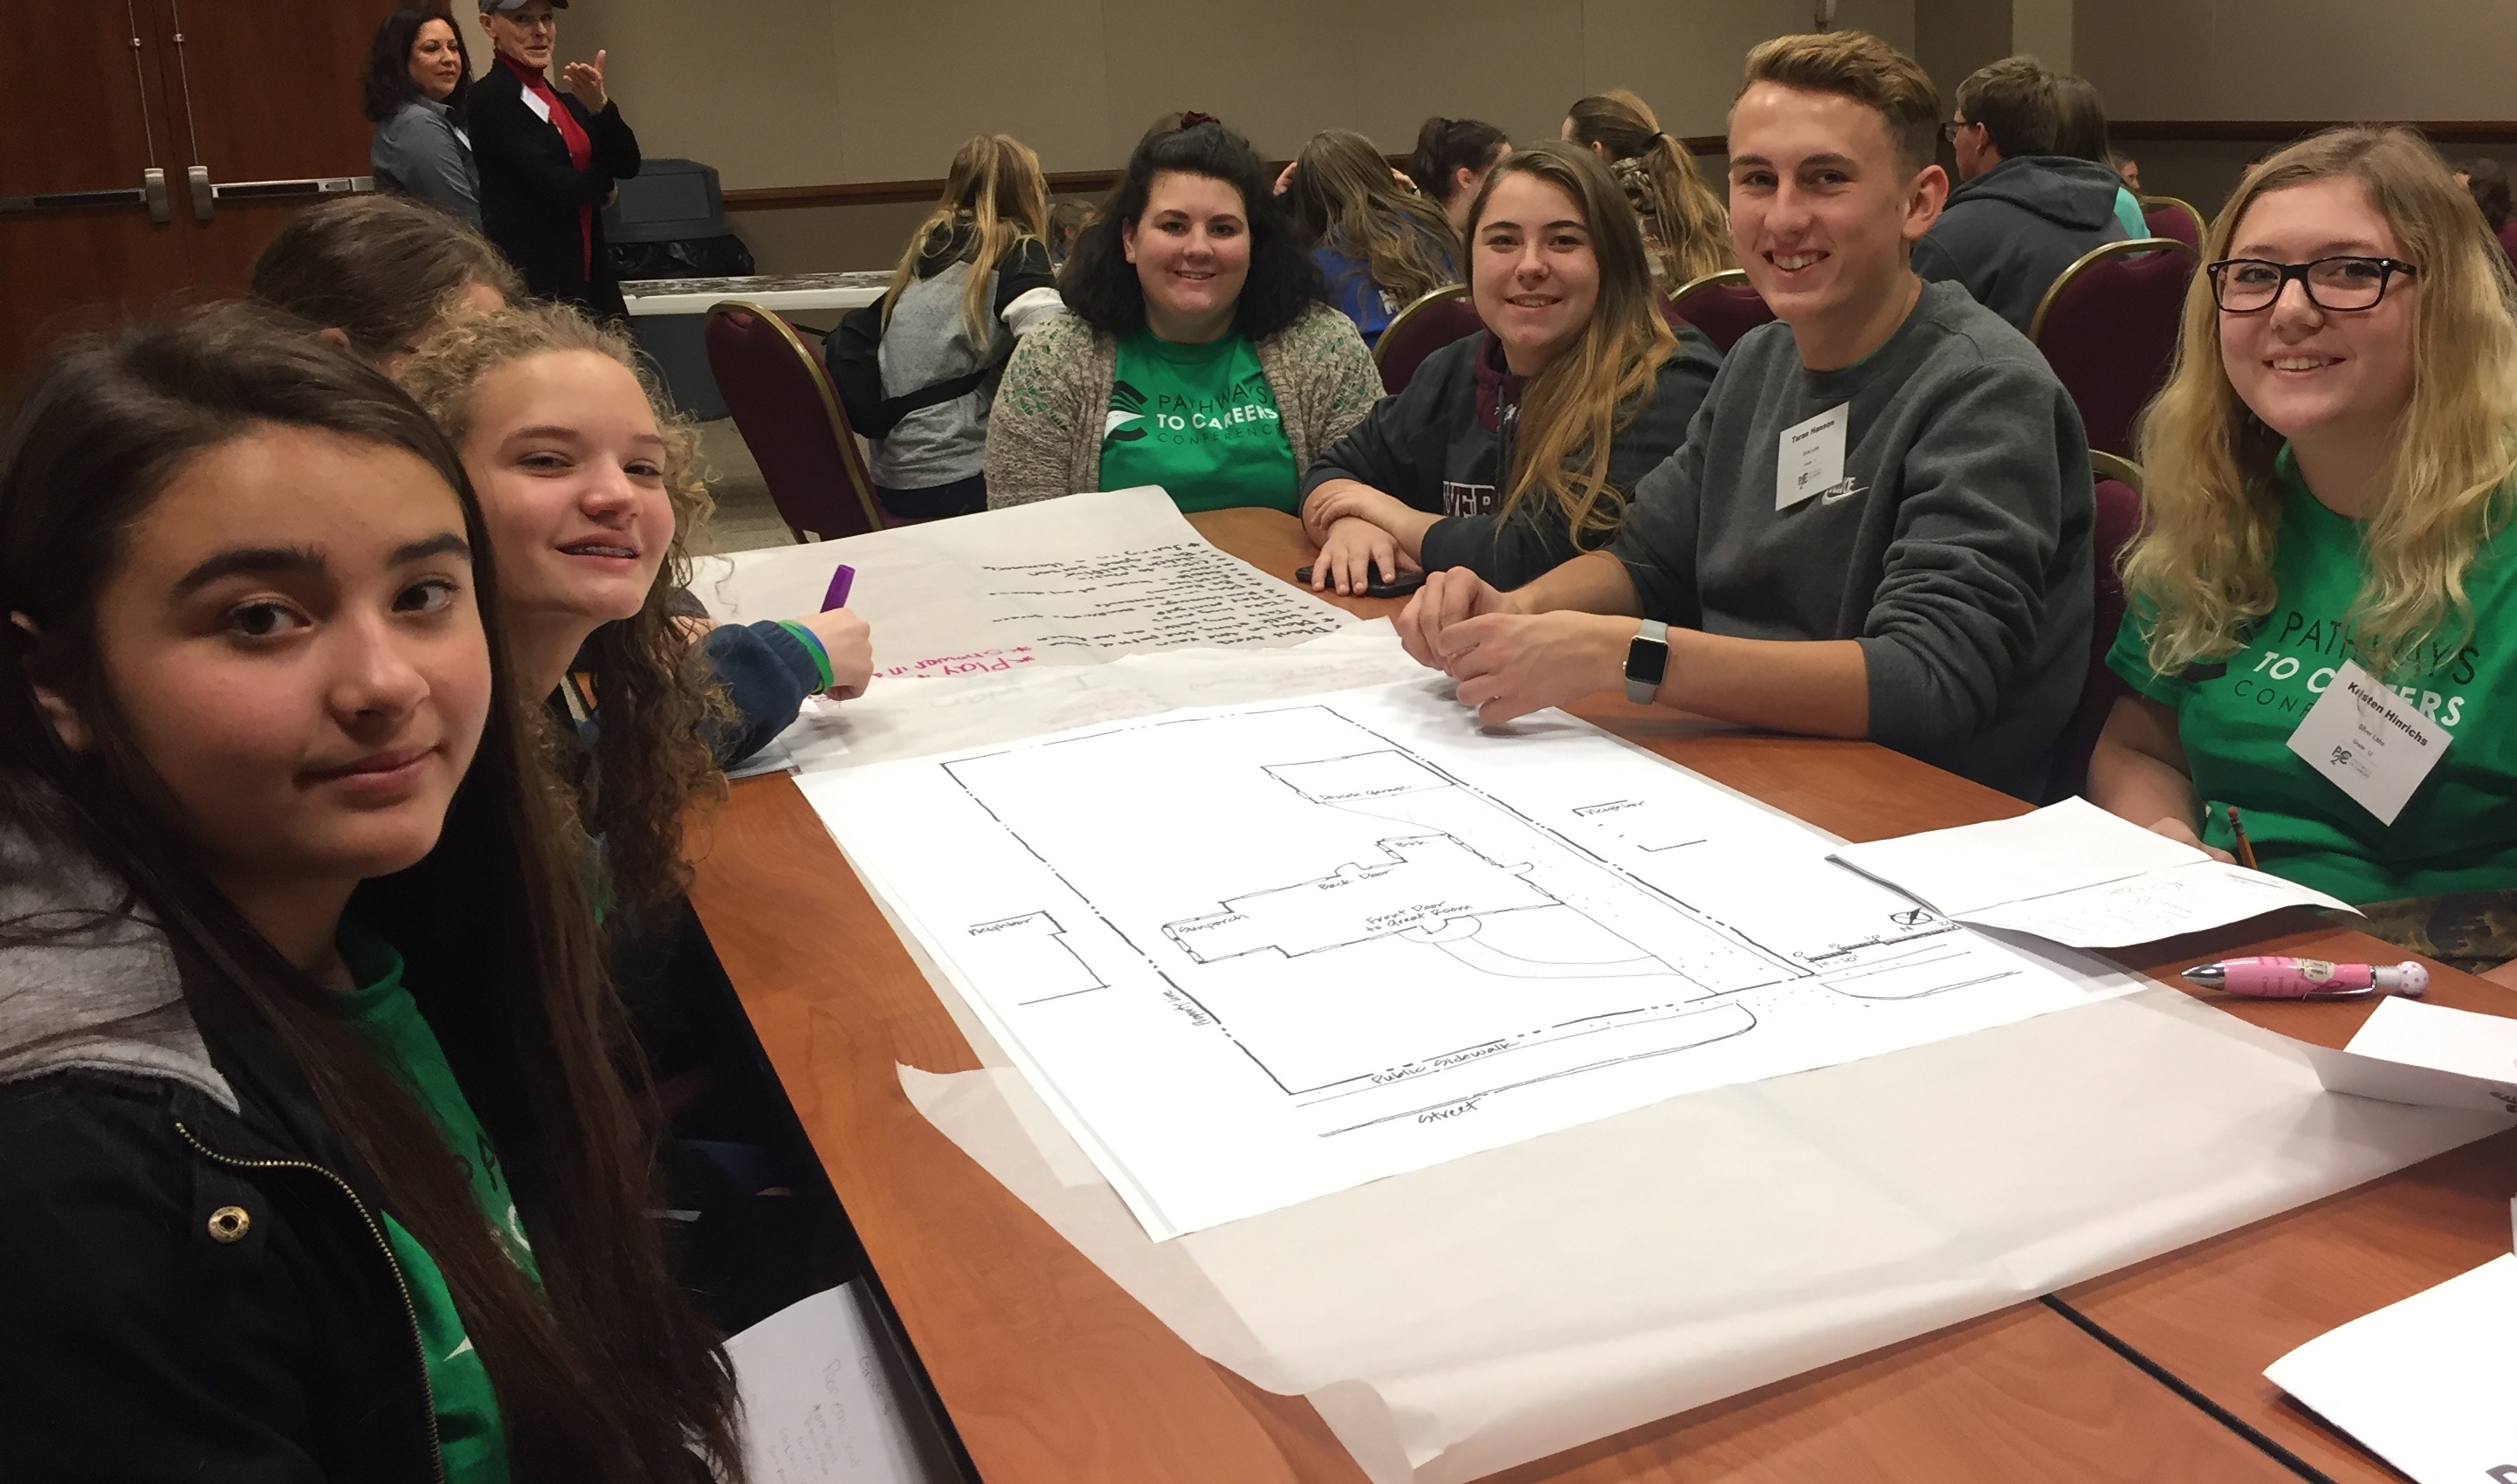 Pathways to Careers Conference